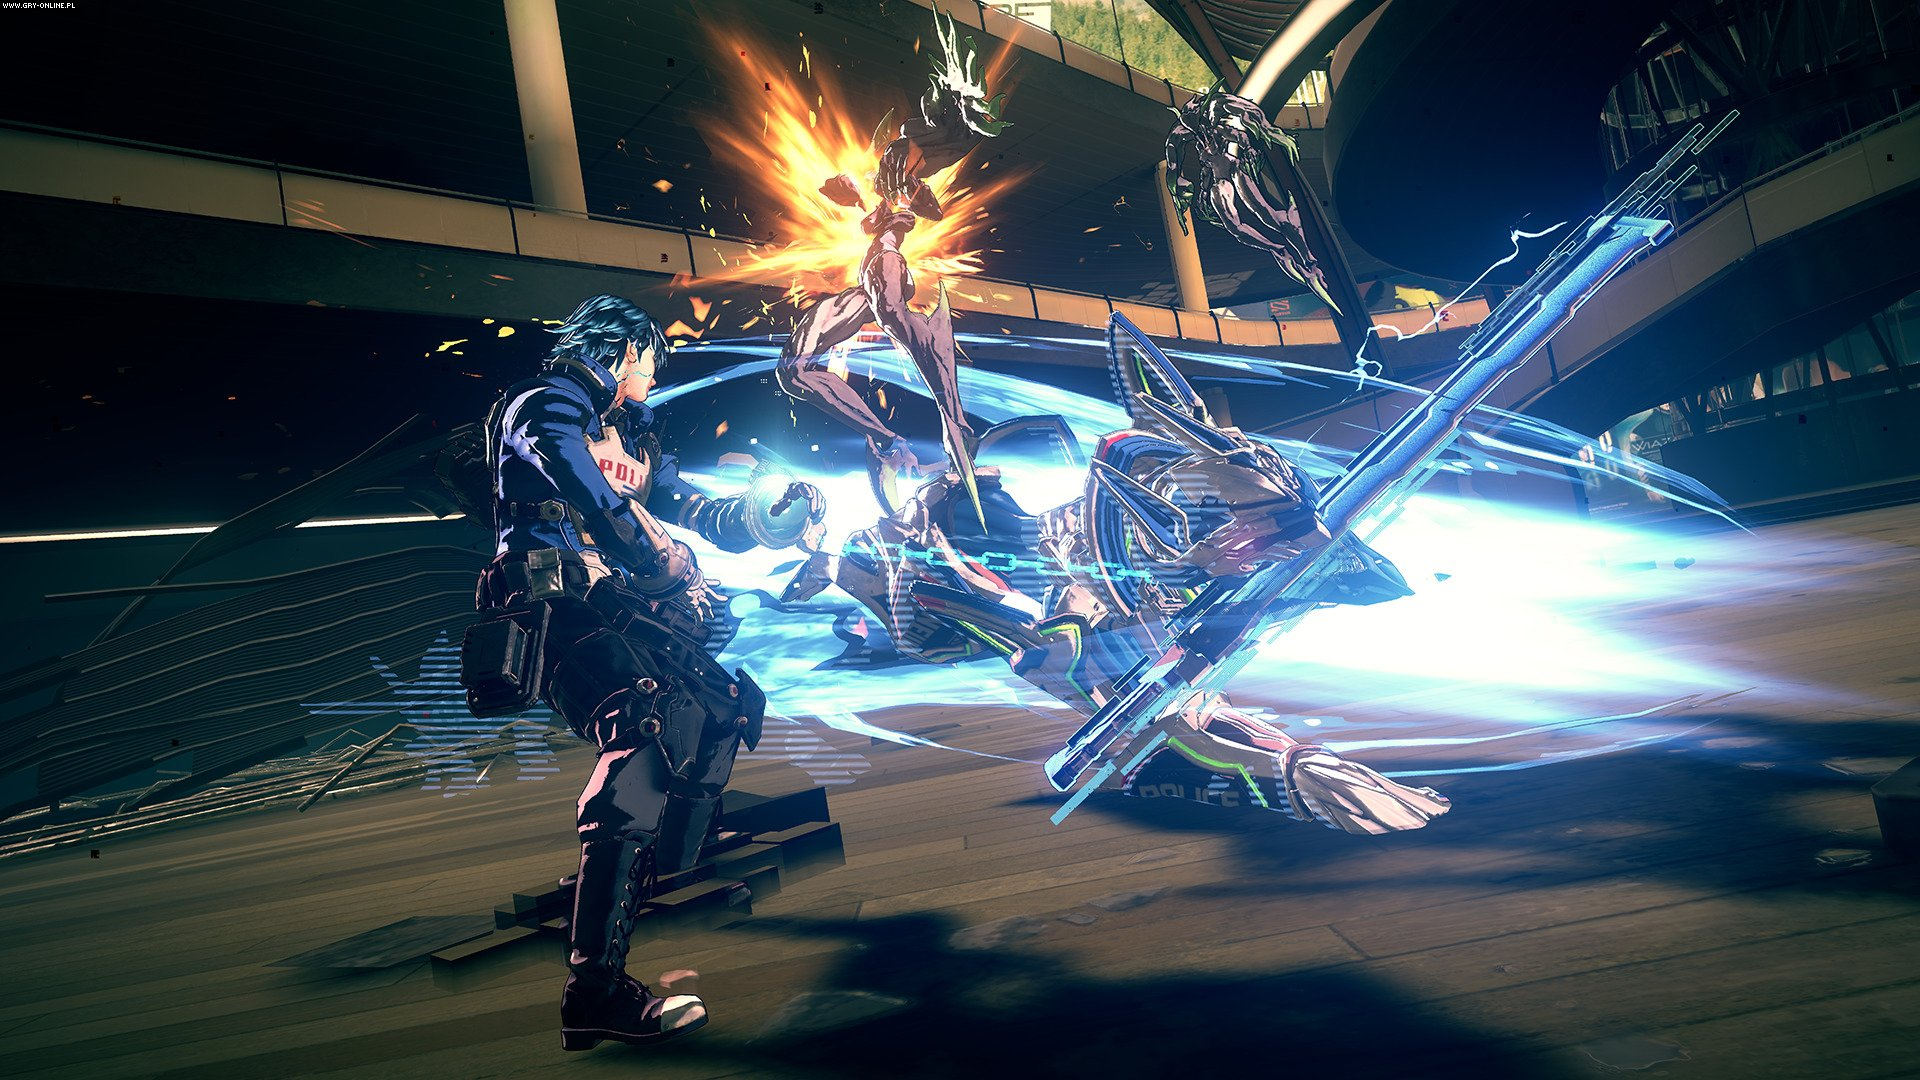 Astral Chain Switch Games Image 17/55, PlatinumGames, Nintendo